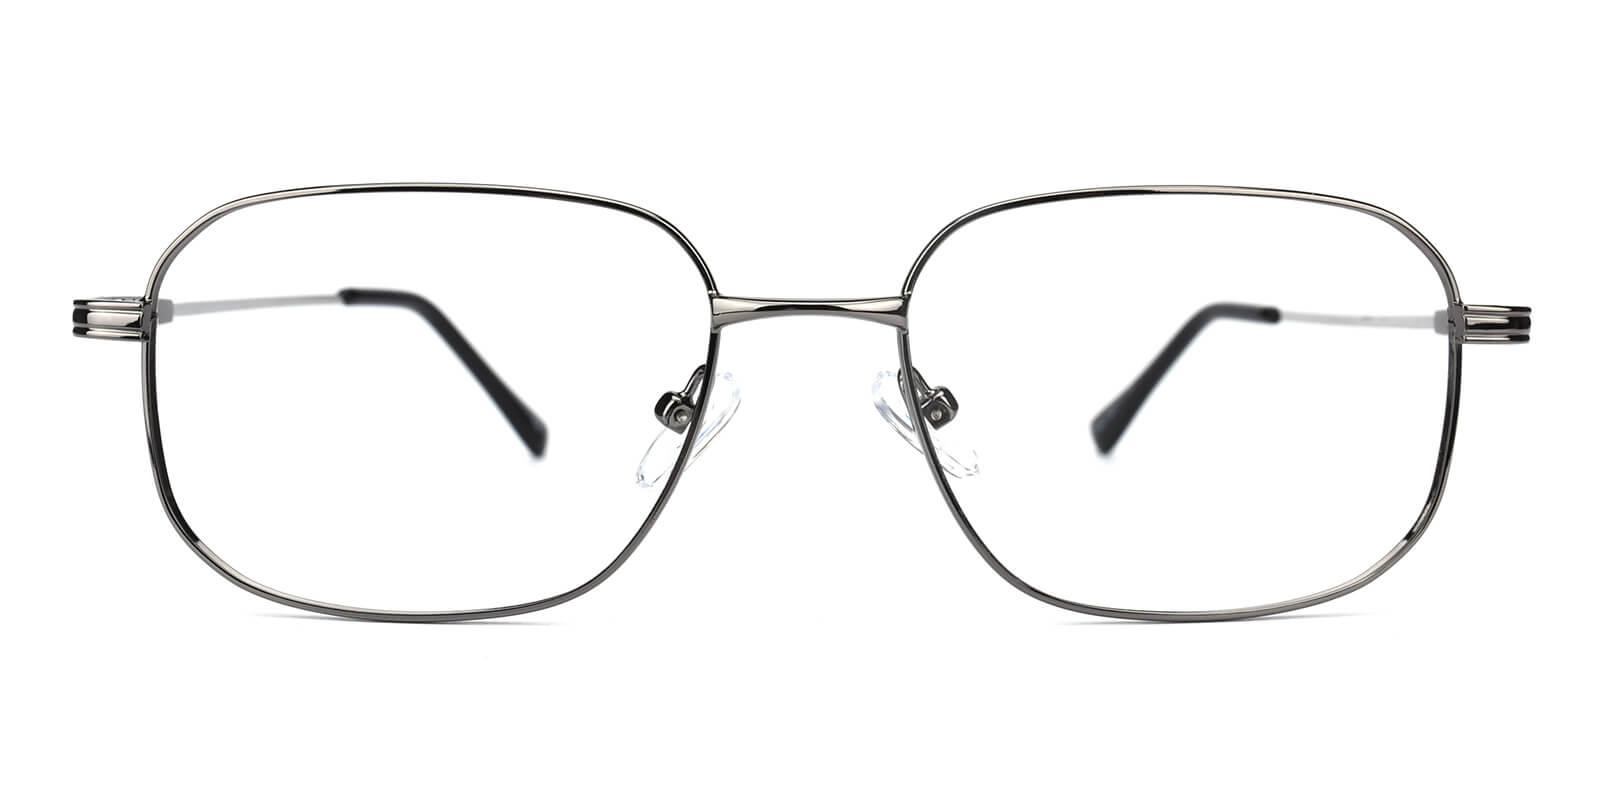 Weston-Gun-Square-Metal-Eyeglasses-additional2